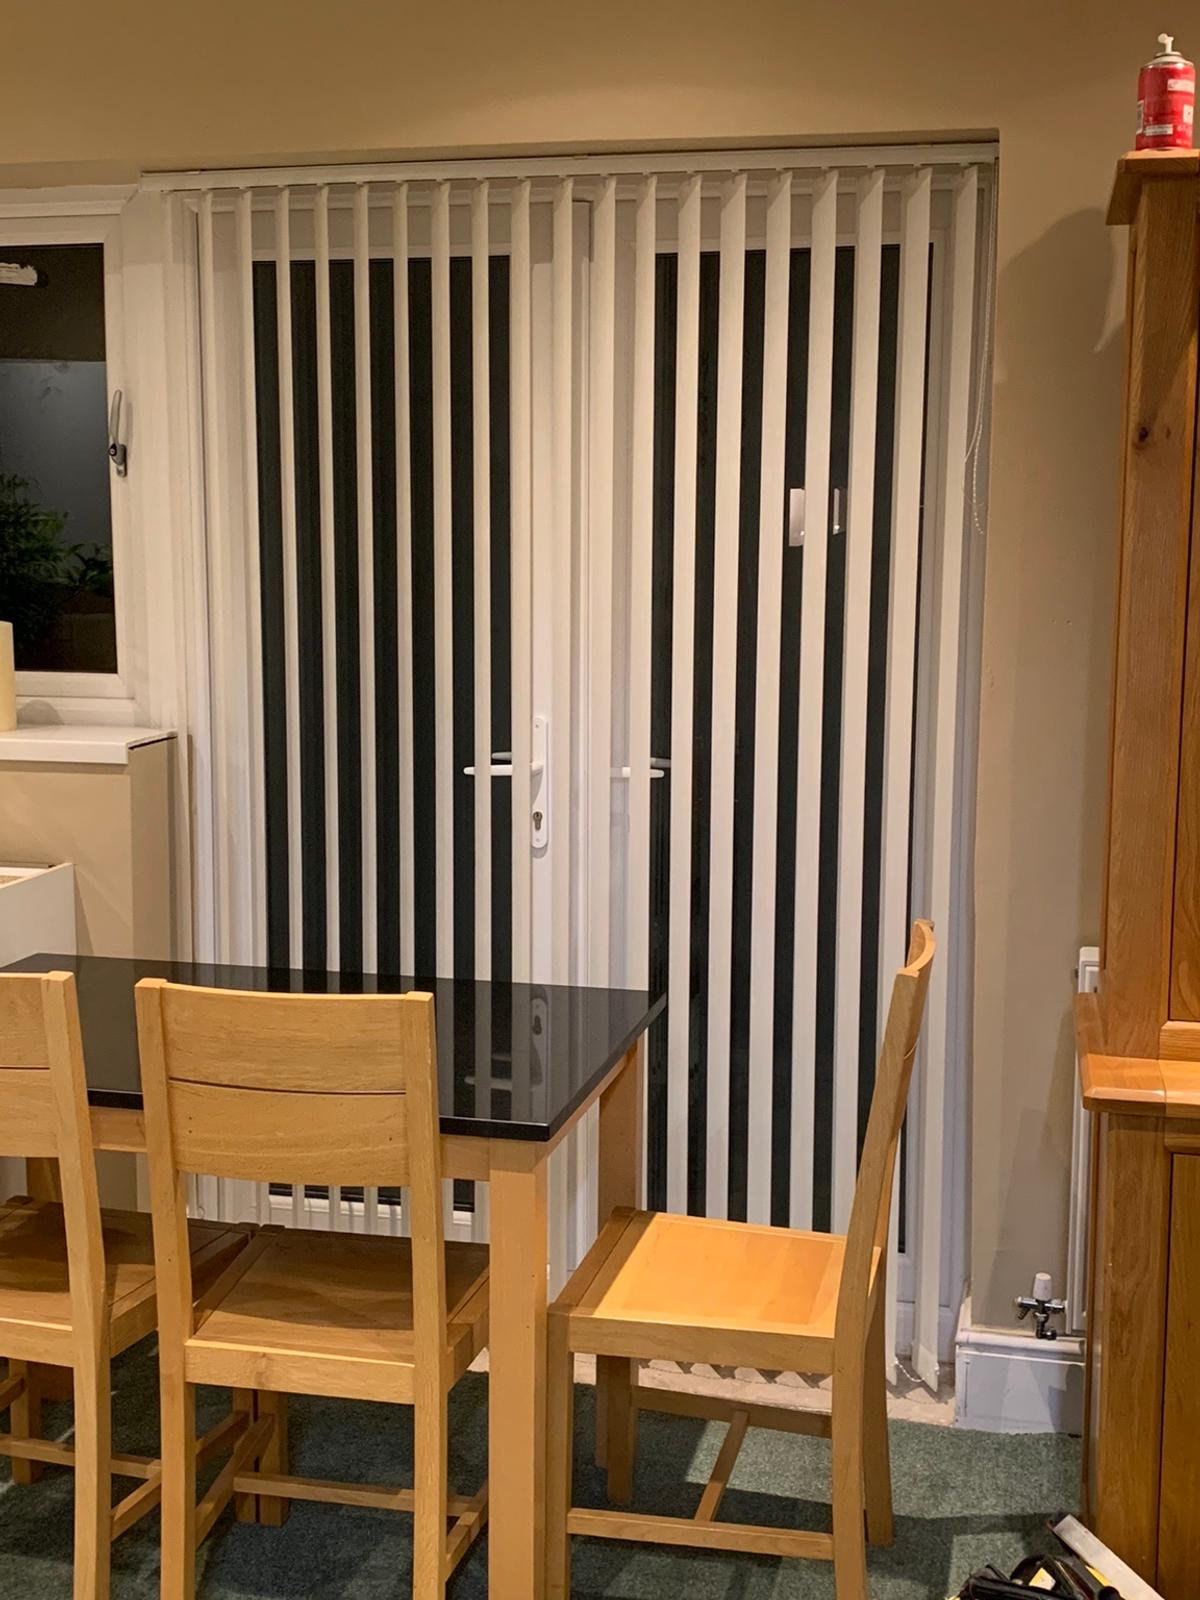 Vertical Blinds For Patio French Doors In Cw7 Winsford For 20 00 For Sale Shpock